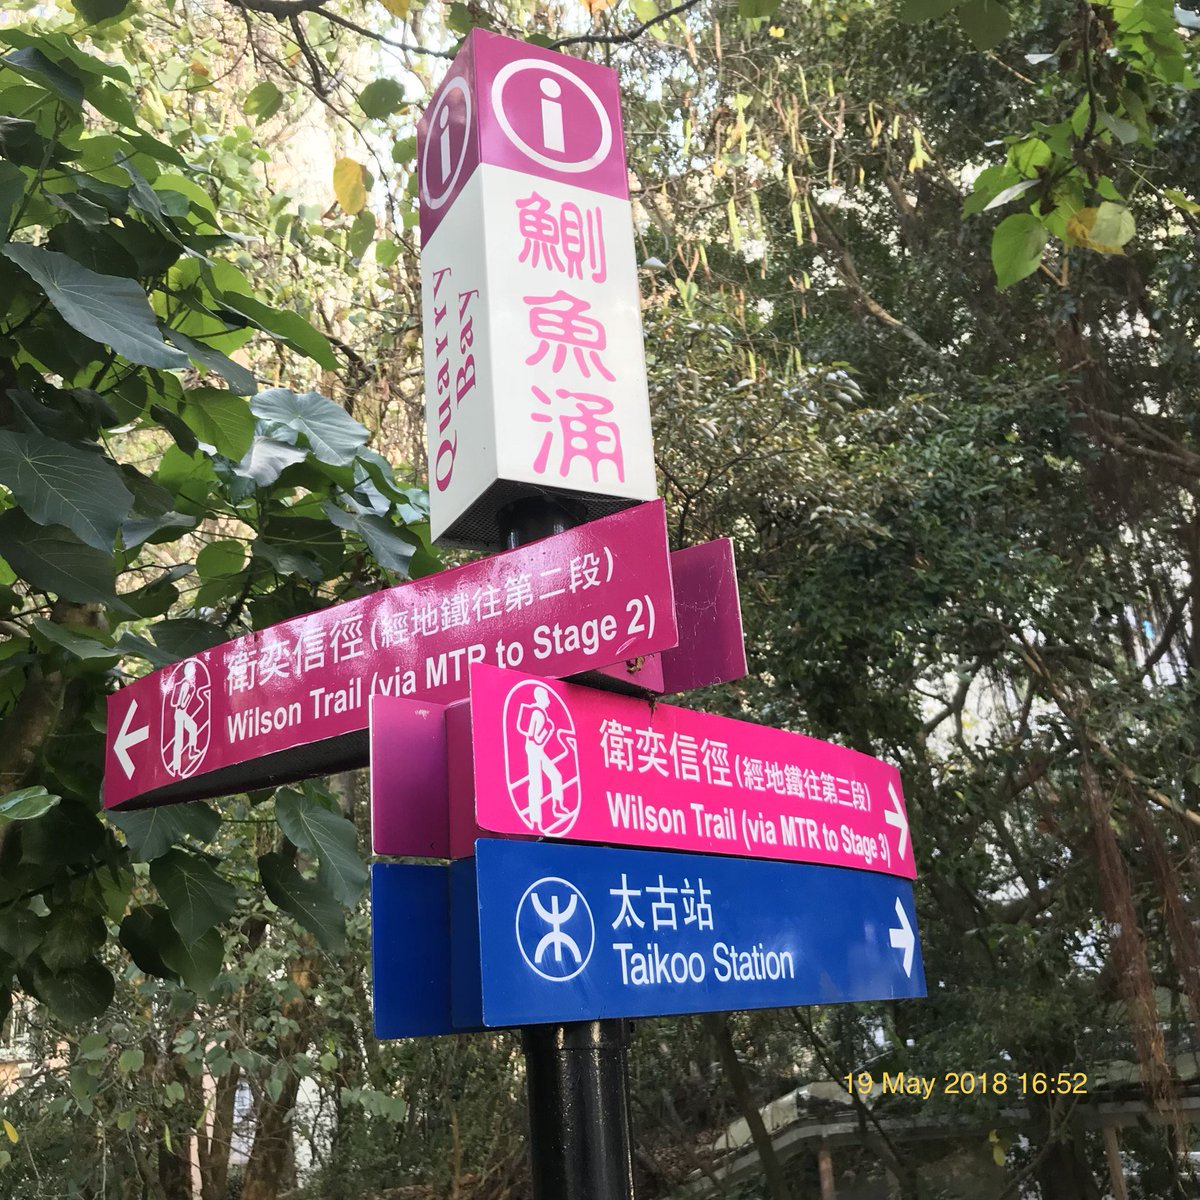 Trail easy access by public transport for one-way travel